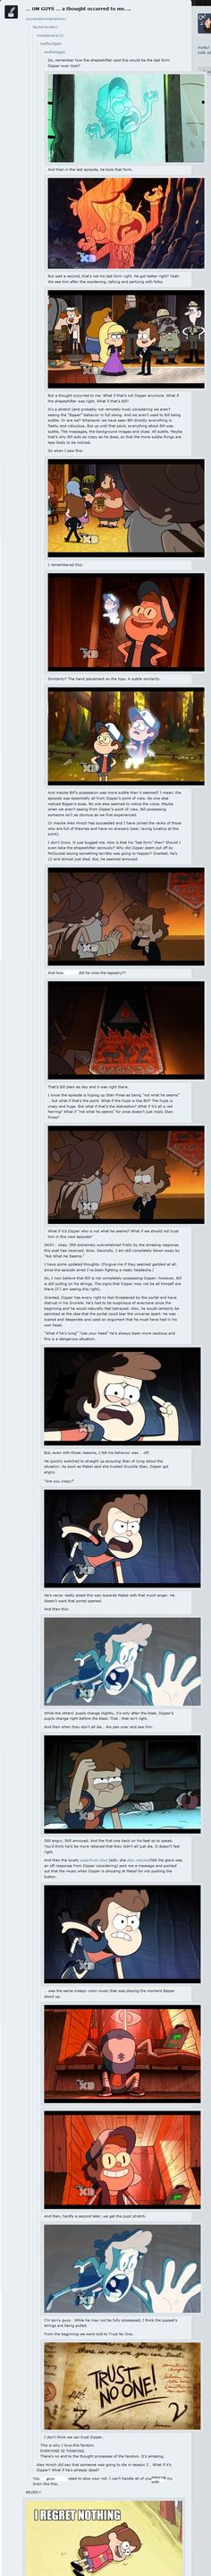 NOPENOPENOPENOPENOPENOPENOPENOPENOPENOPE<---------- this is awesome! It makes me question everything about the latest episodes